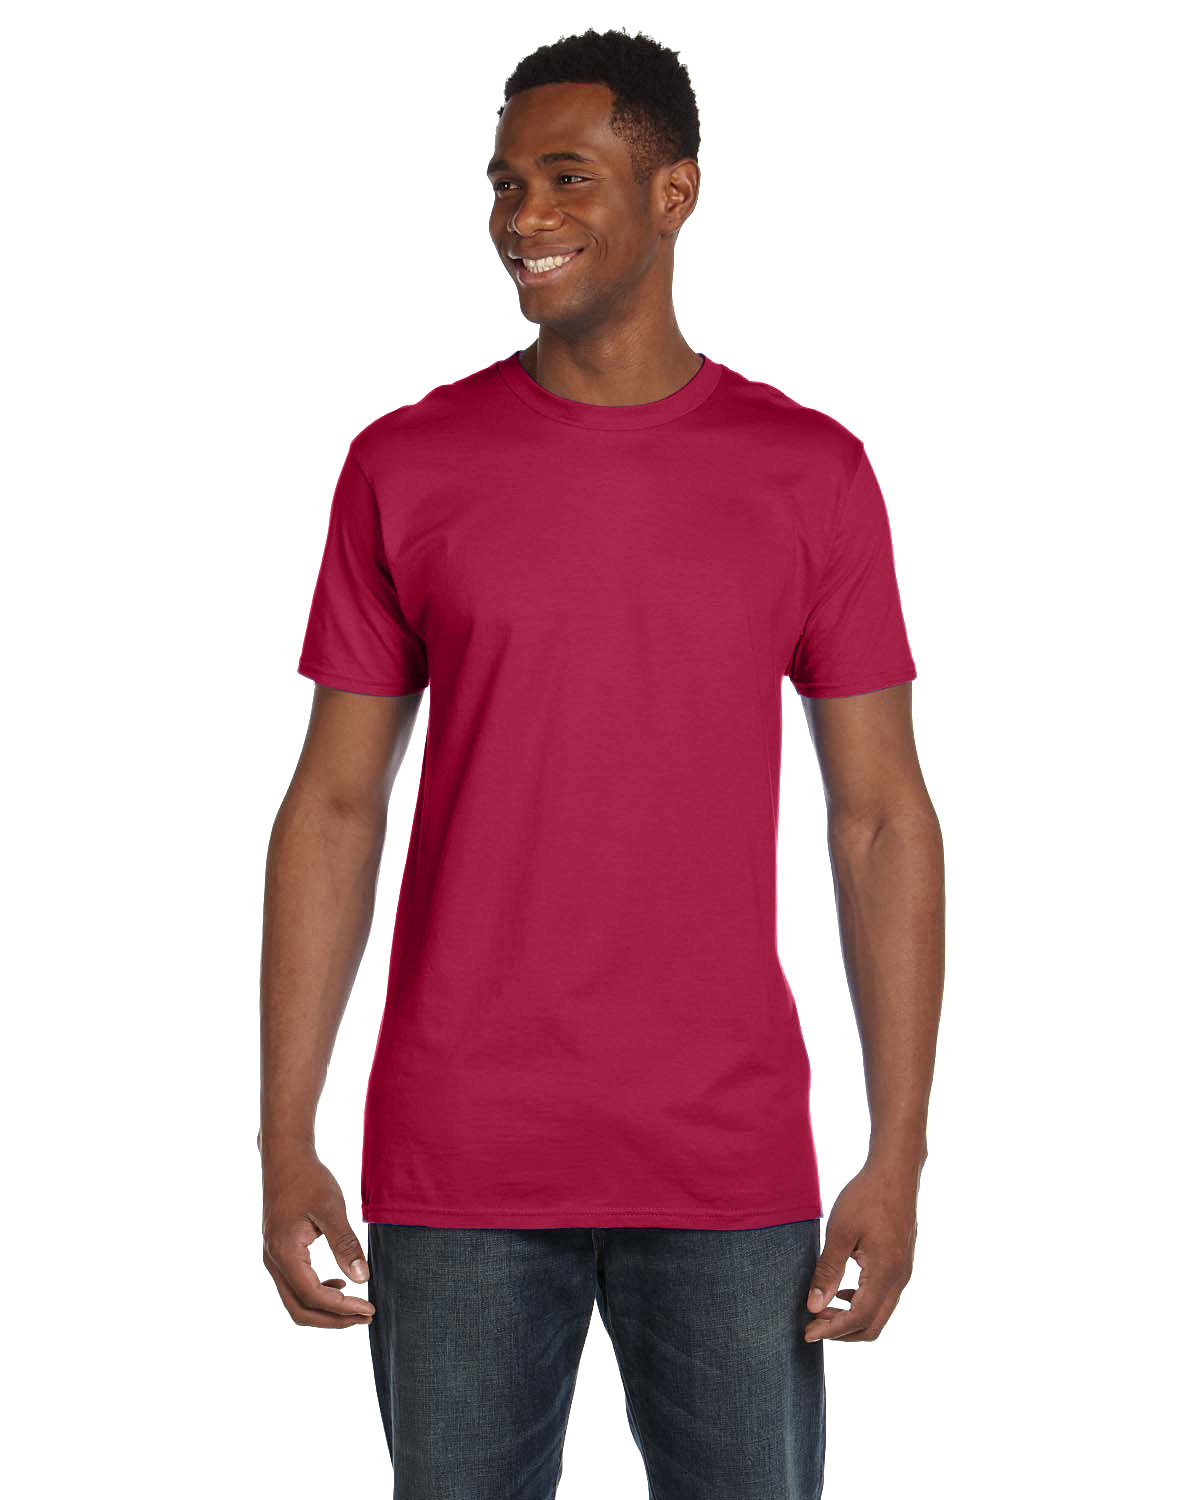 Hanes Unisex Nano-T® T-Shirt HEATHER RED